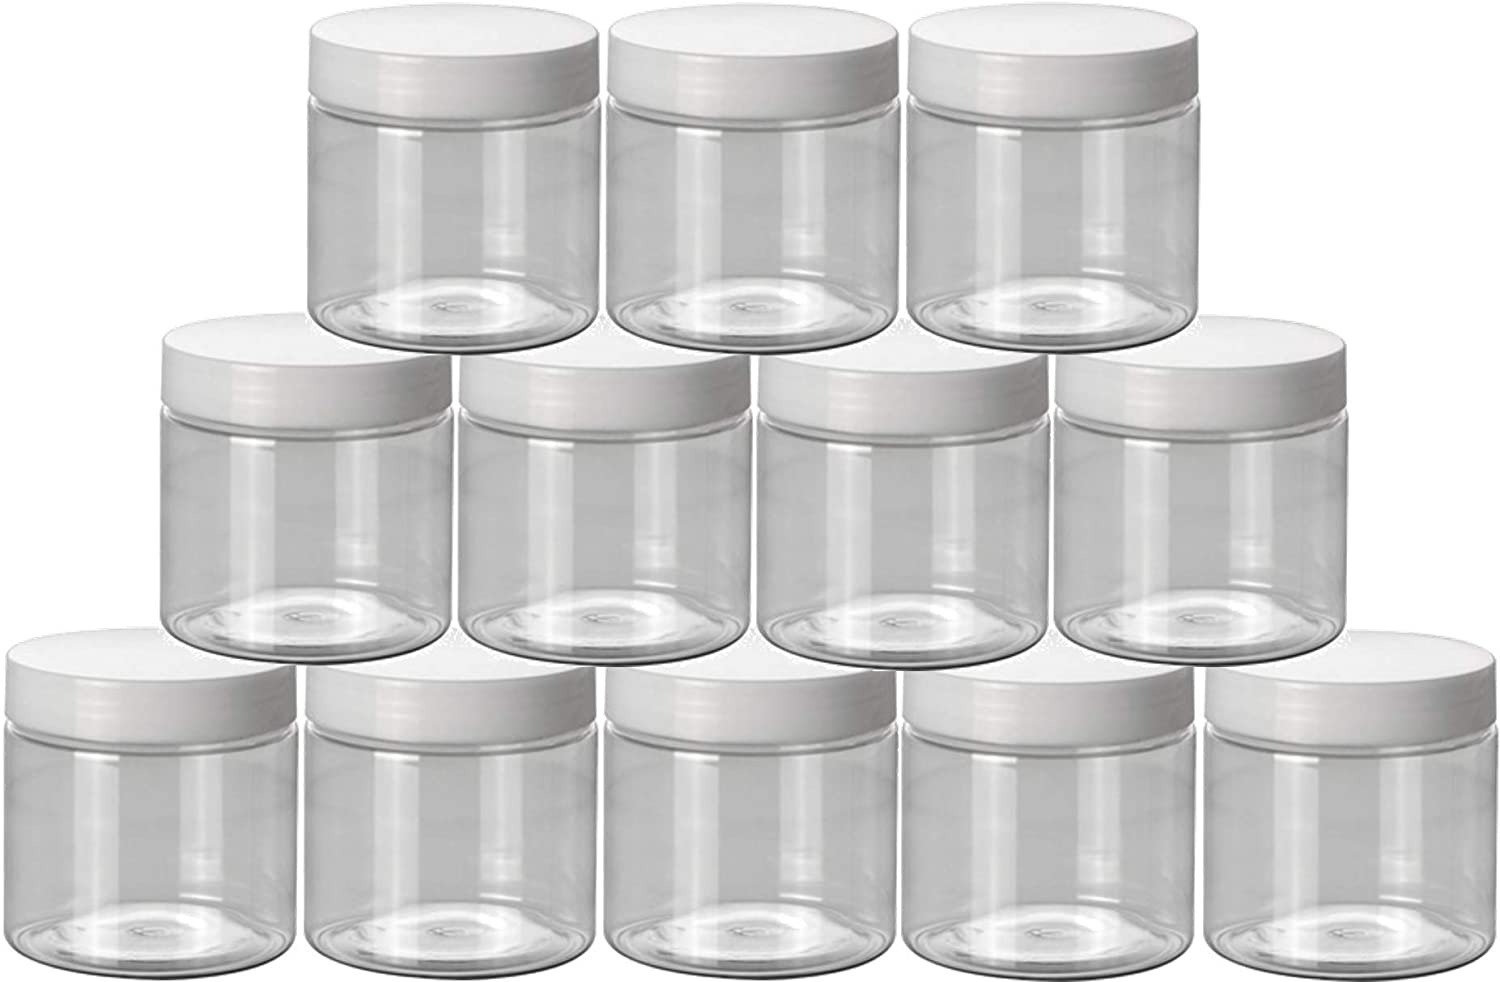 Plastic jars with lids, 12 pack refillable plastic containers, slime jars beauty products cream, scrubs, storage containers (2 Ounce)